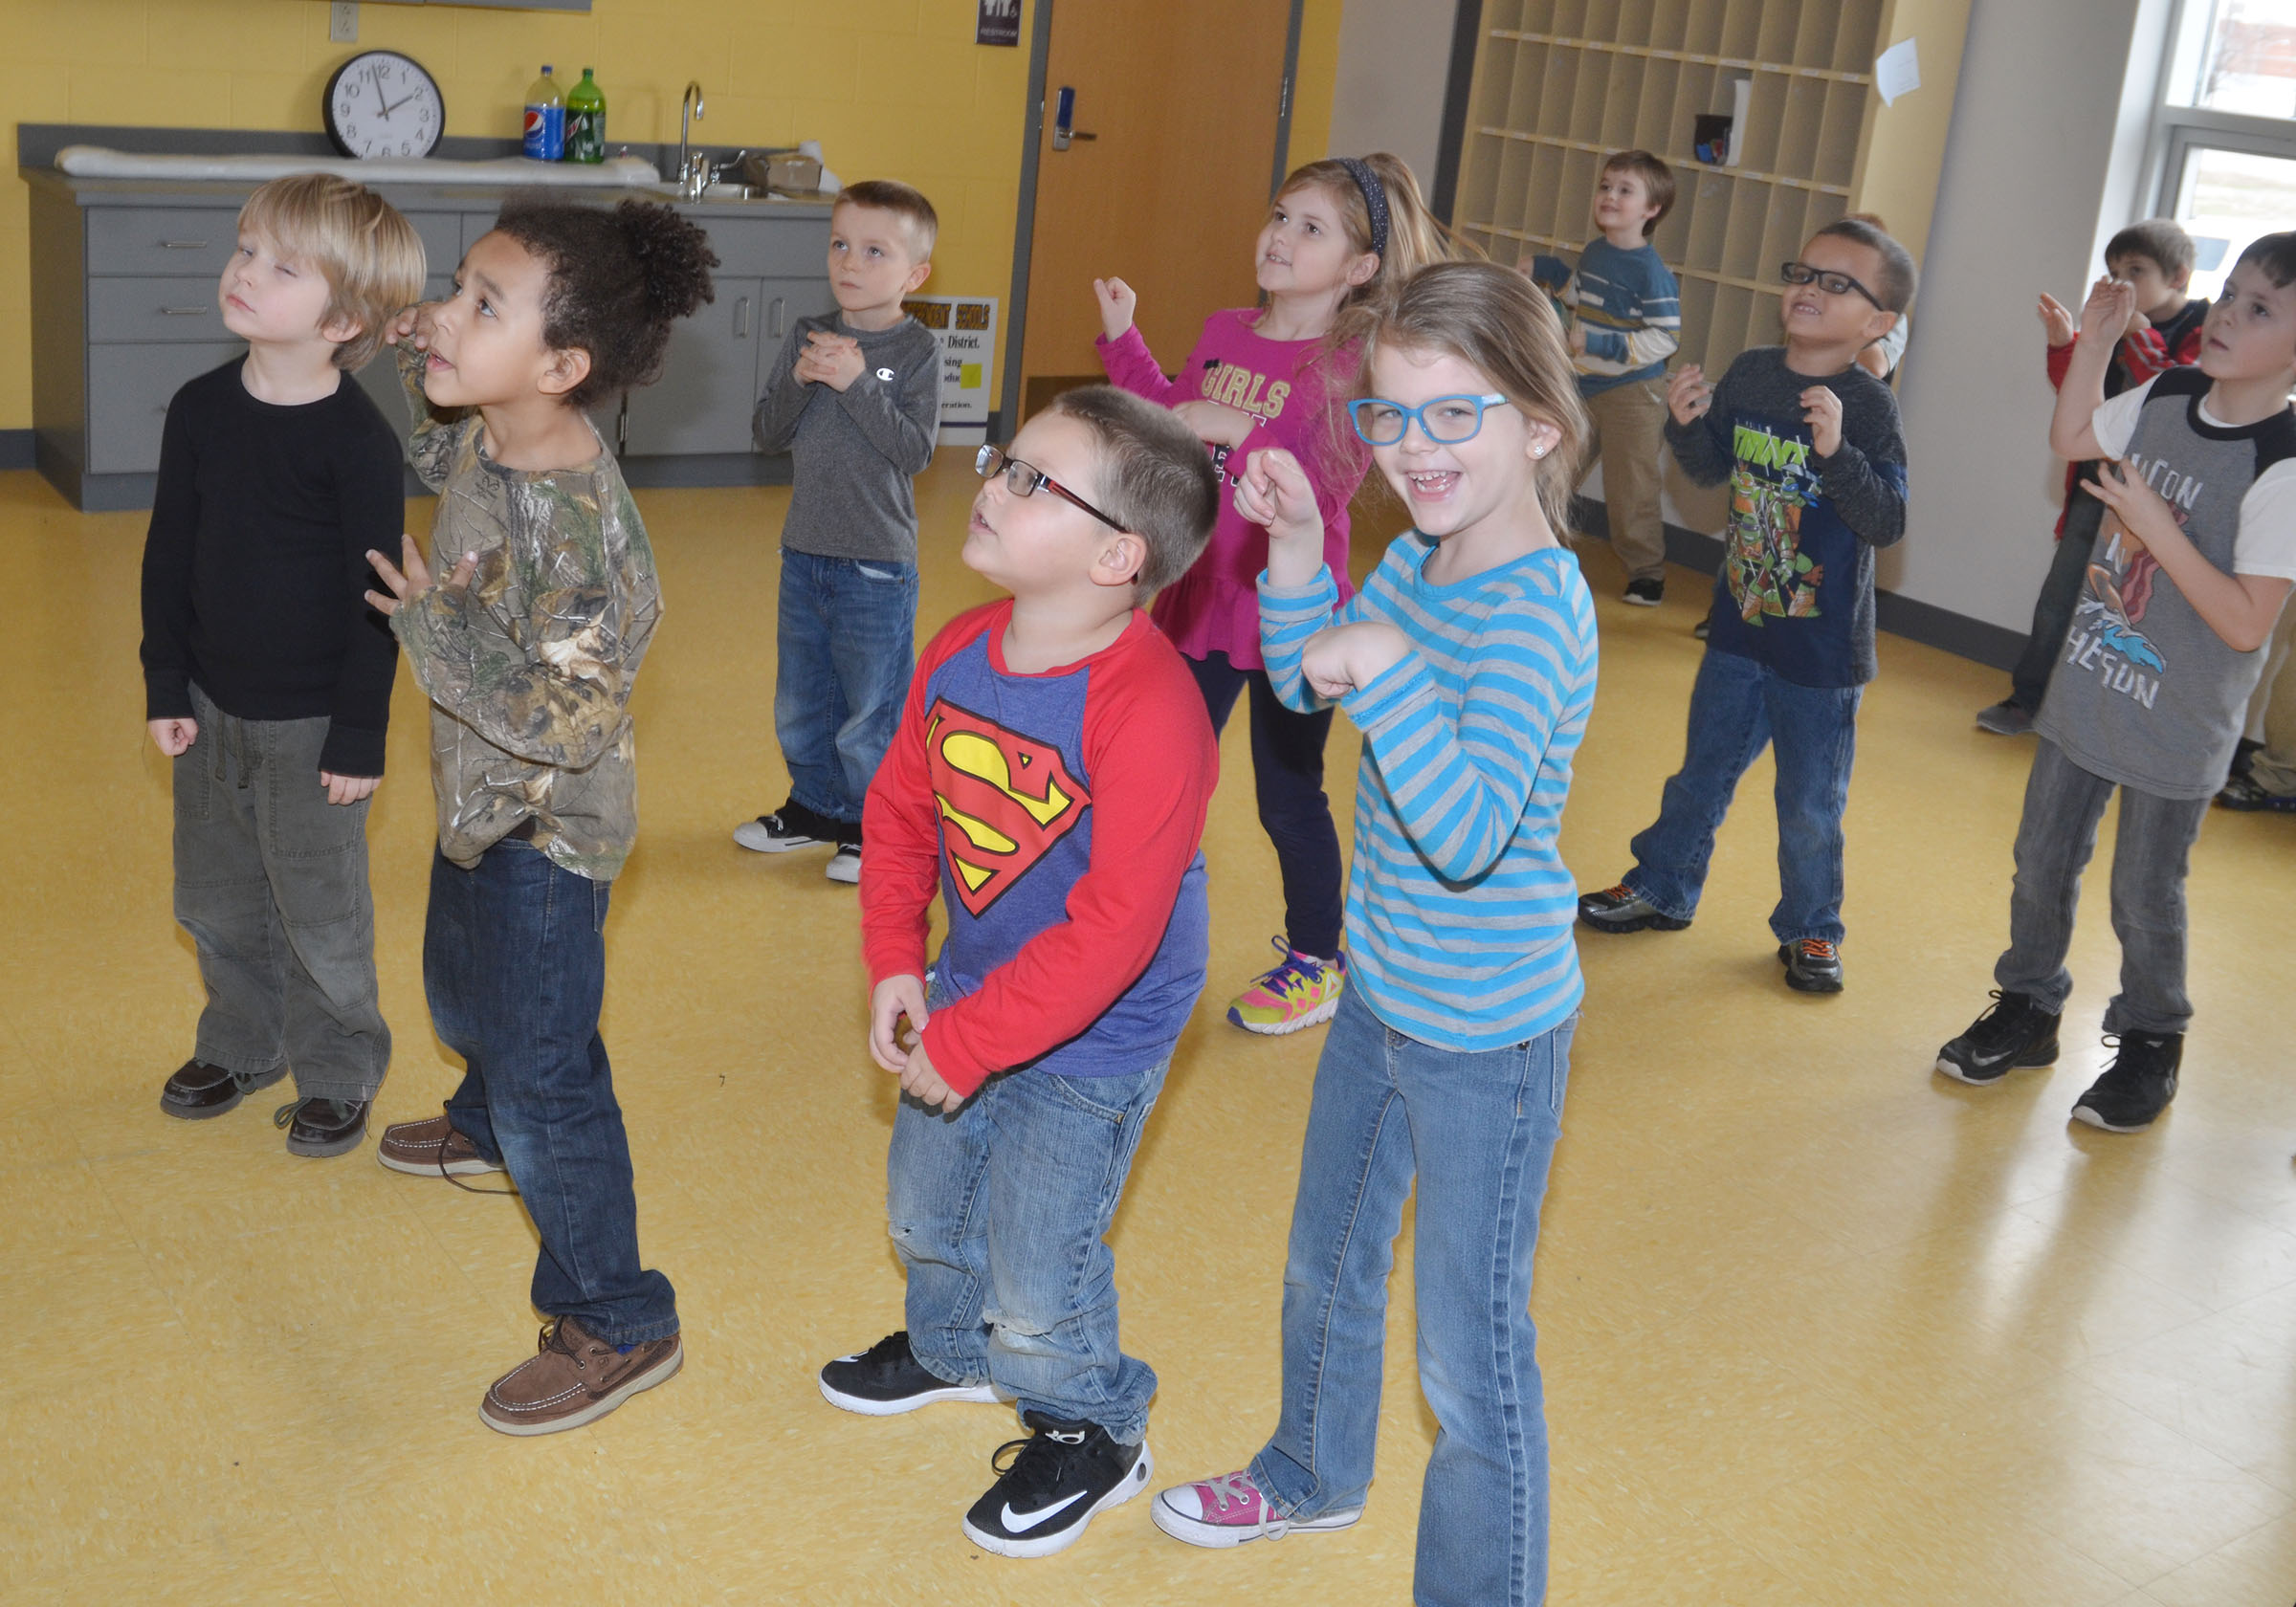 CES kindergartener Zoe Weddle smiles as she dances with her classmates.